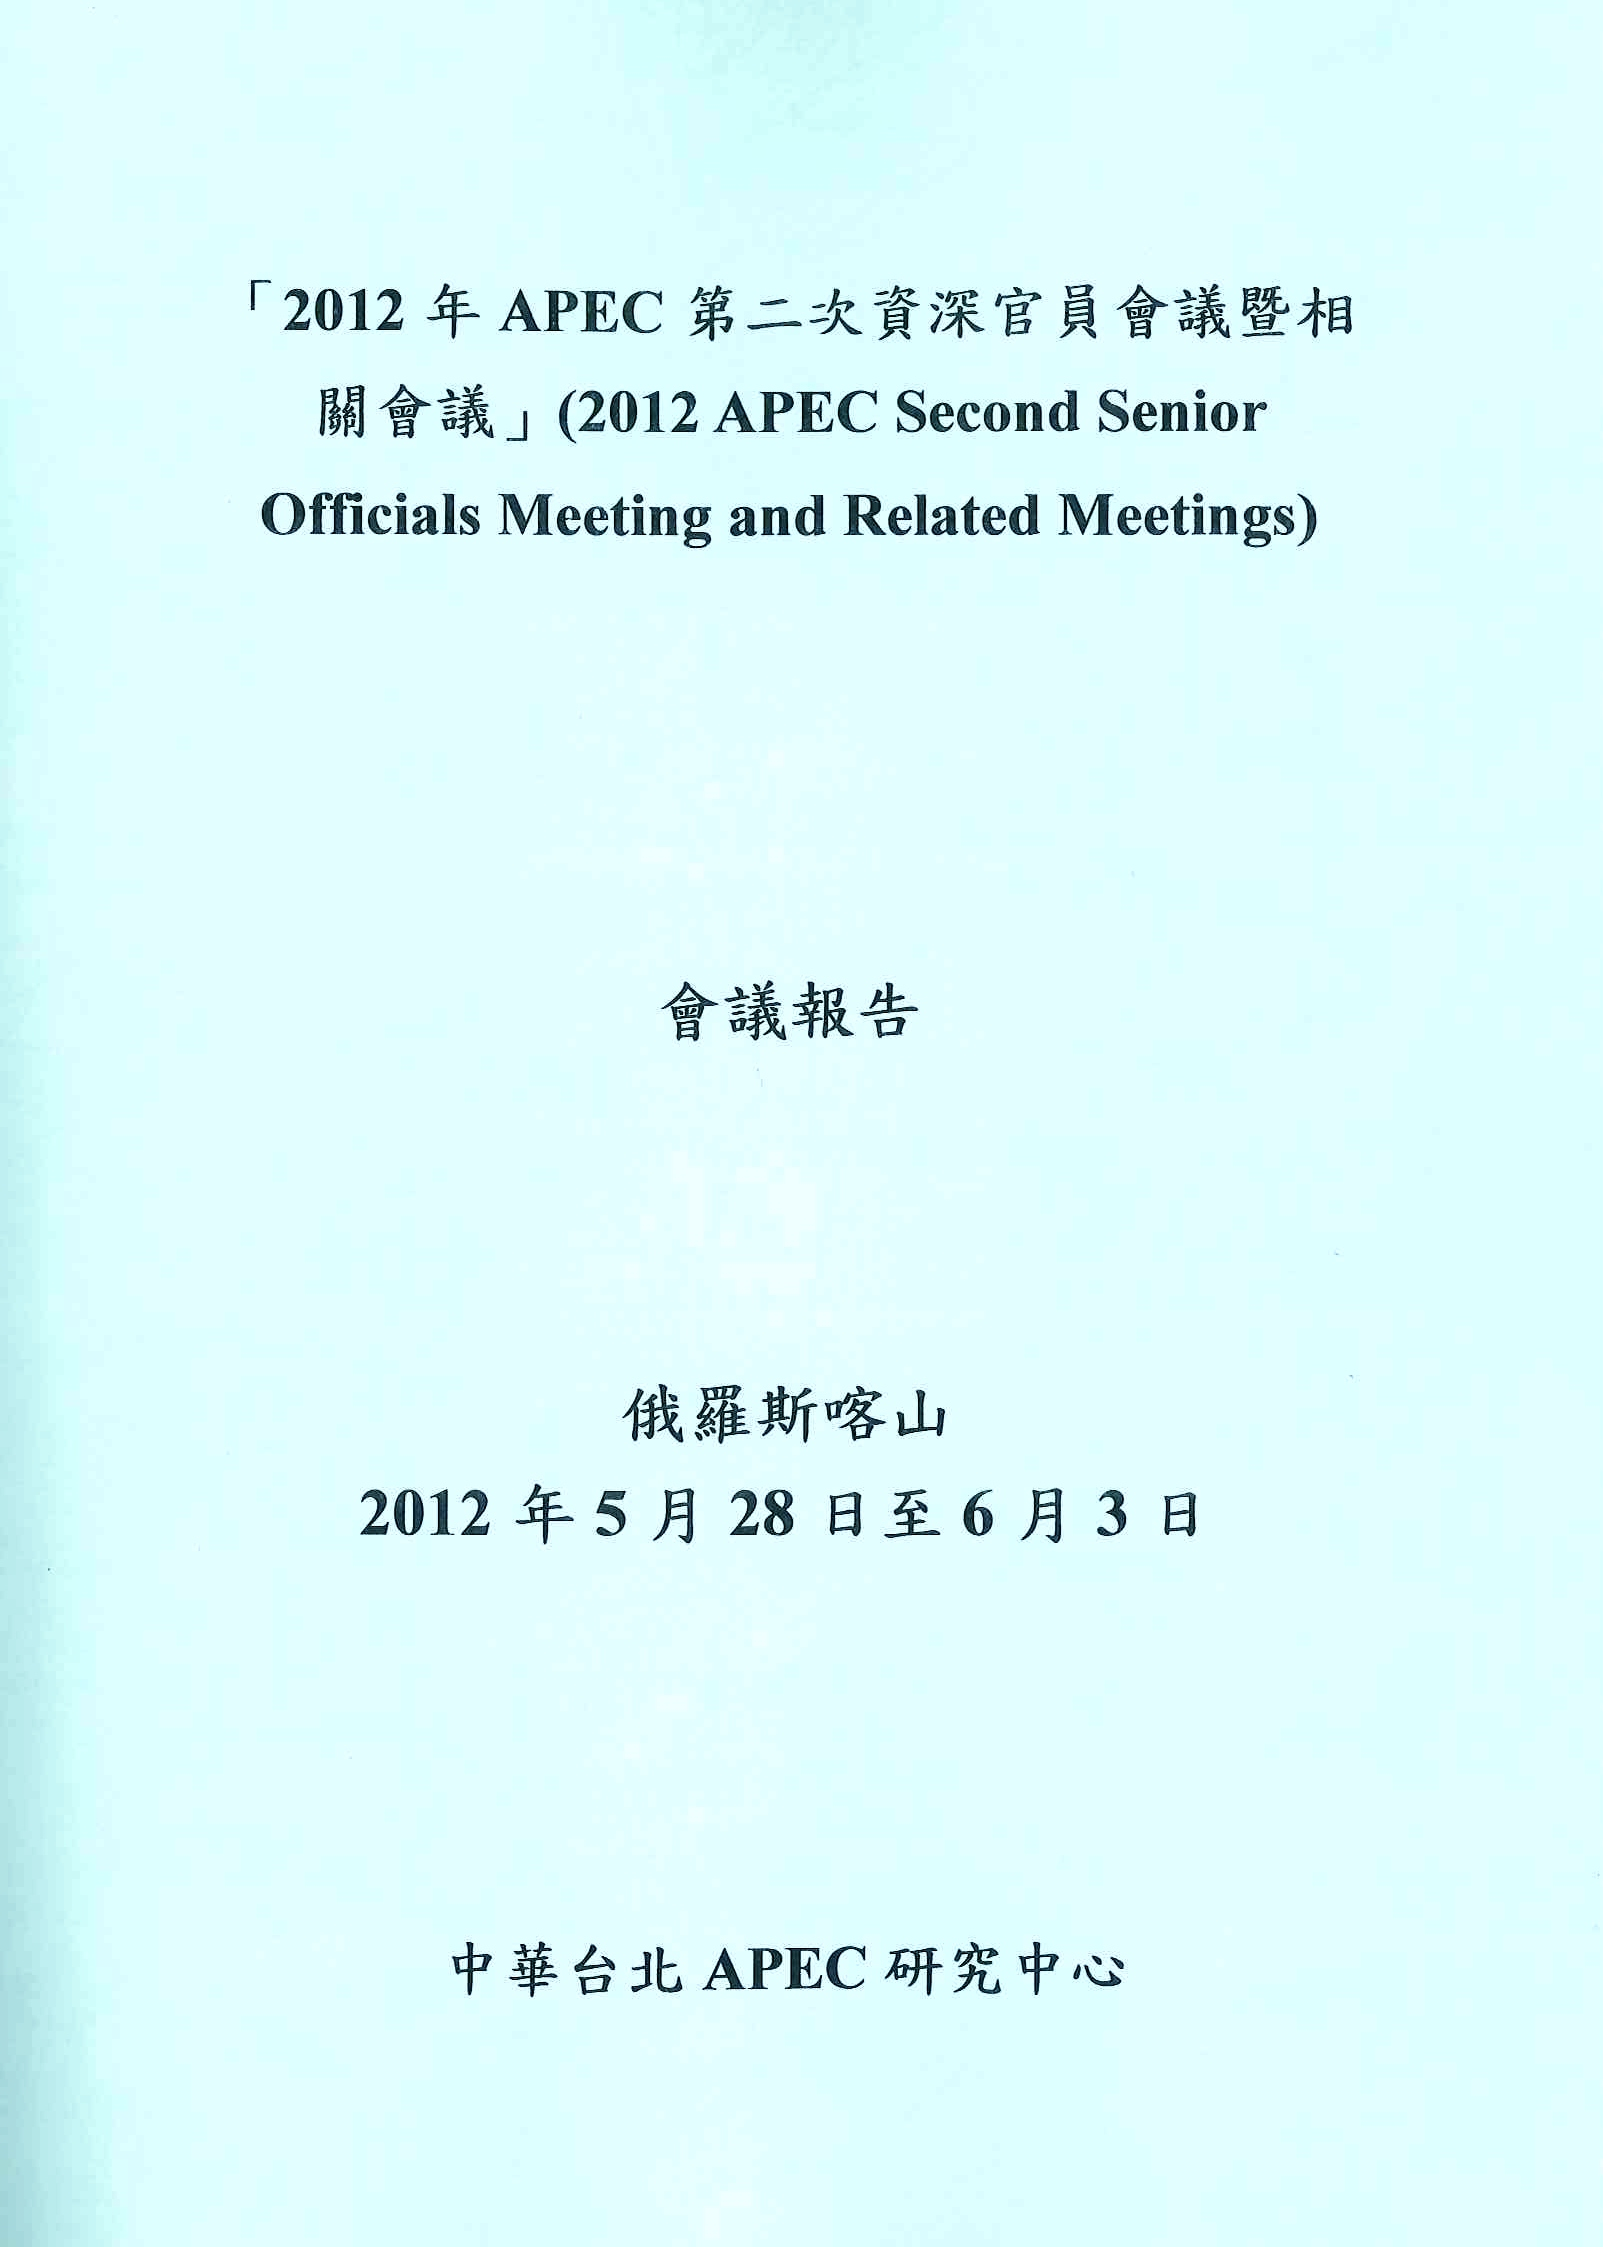 「2012年APEC第二次資深官員會議暨相關會議」會議報告=2012 APEC second senior officials meeting and related meetings